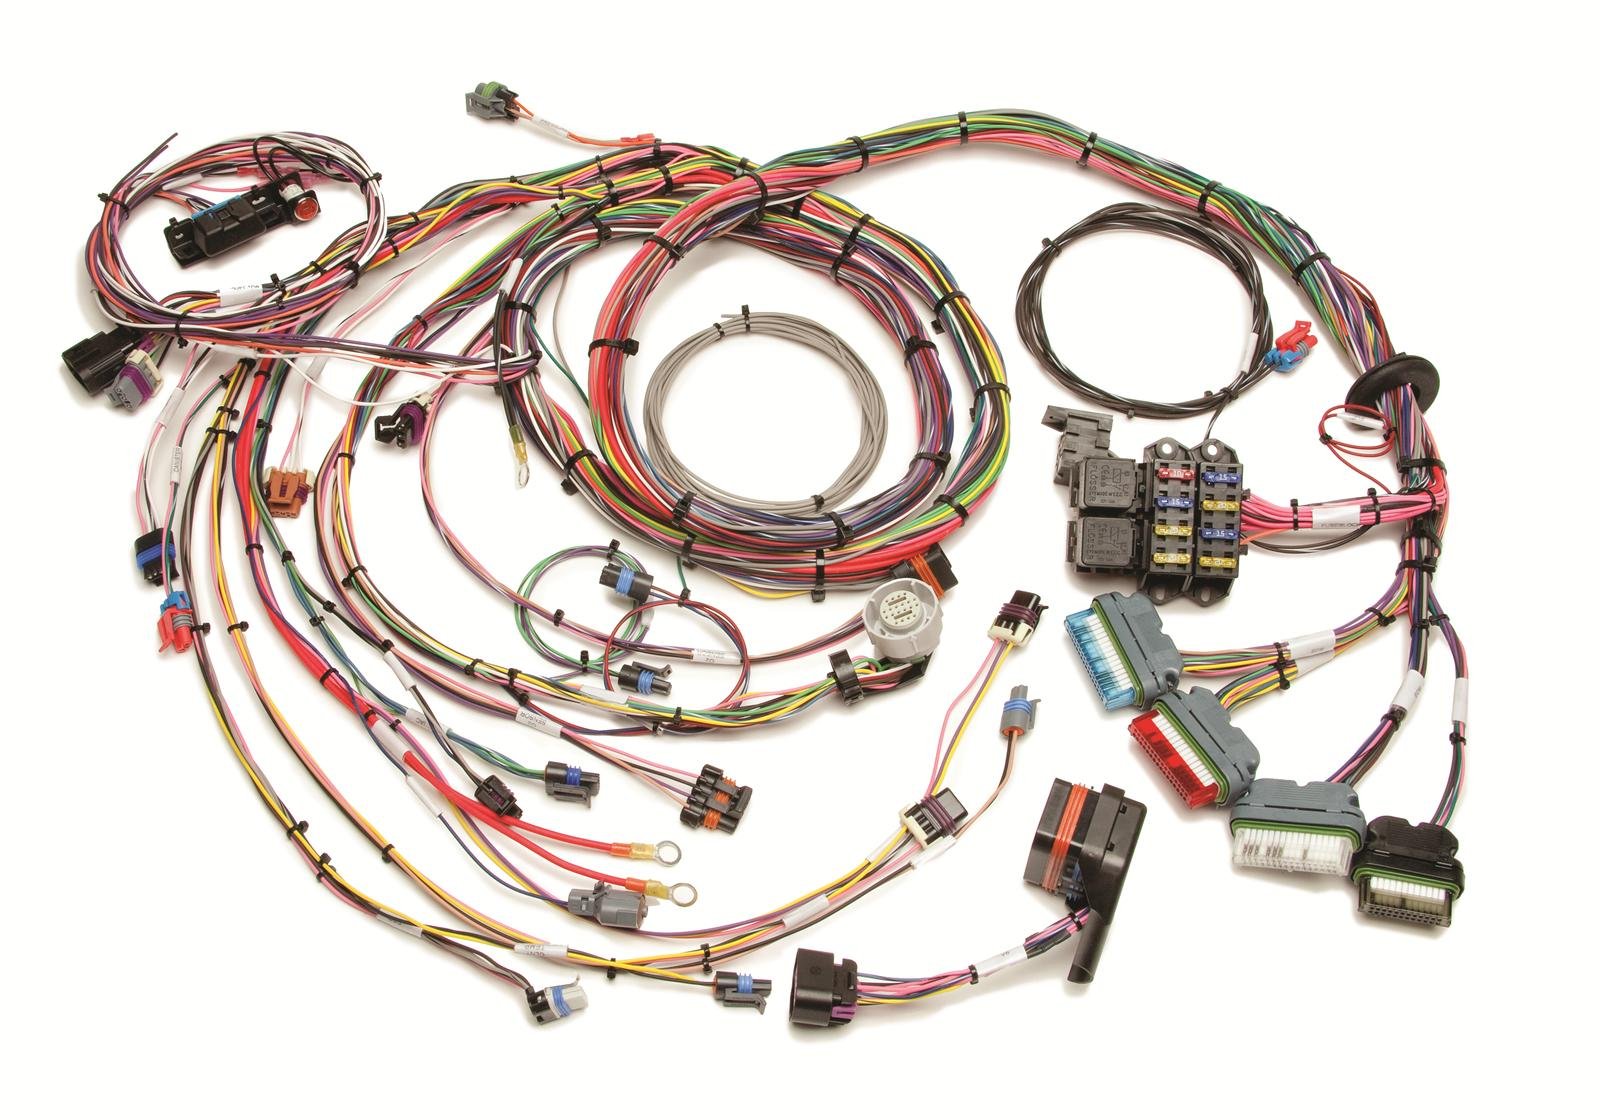 hight resolution of painless performance fuel injection harnesses 60215 free shipping on orders over 99 at summit racing